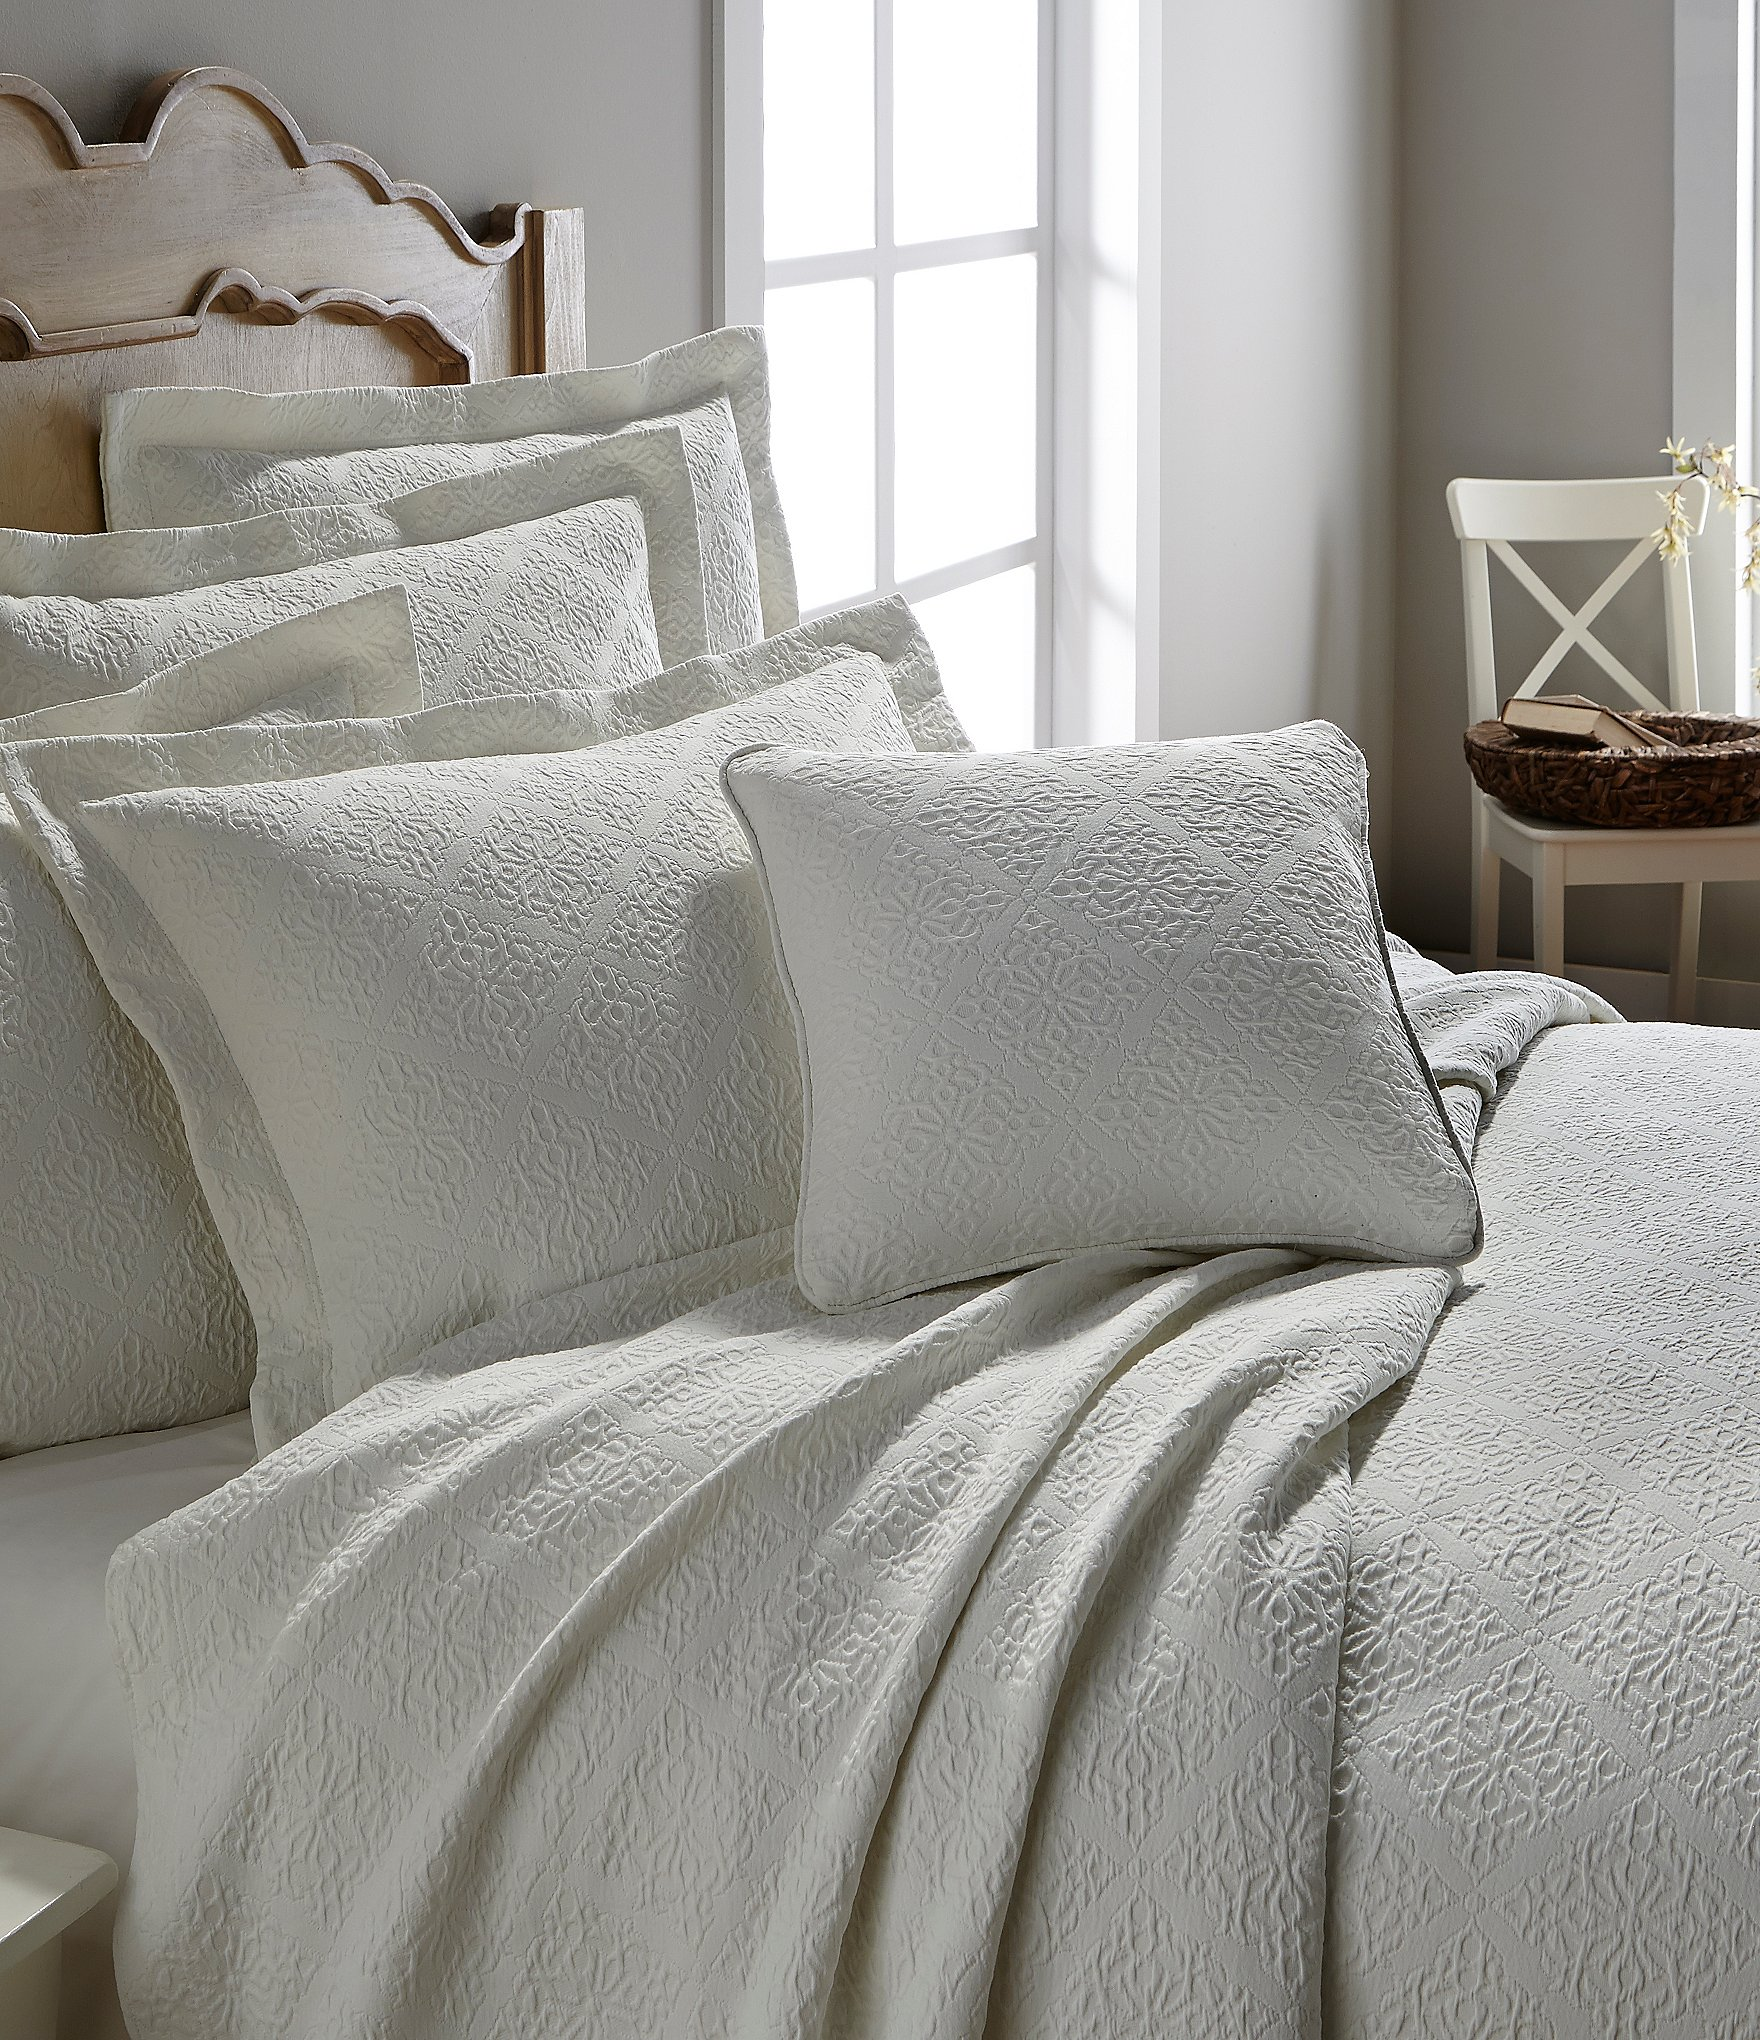 at pin chambray for living dillards set bedding southern com tynedale duvet embroidered visit bed shop mini